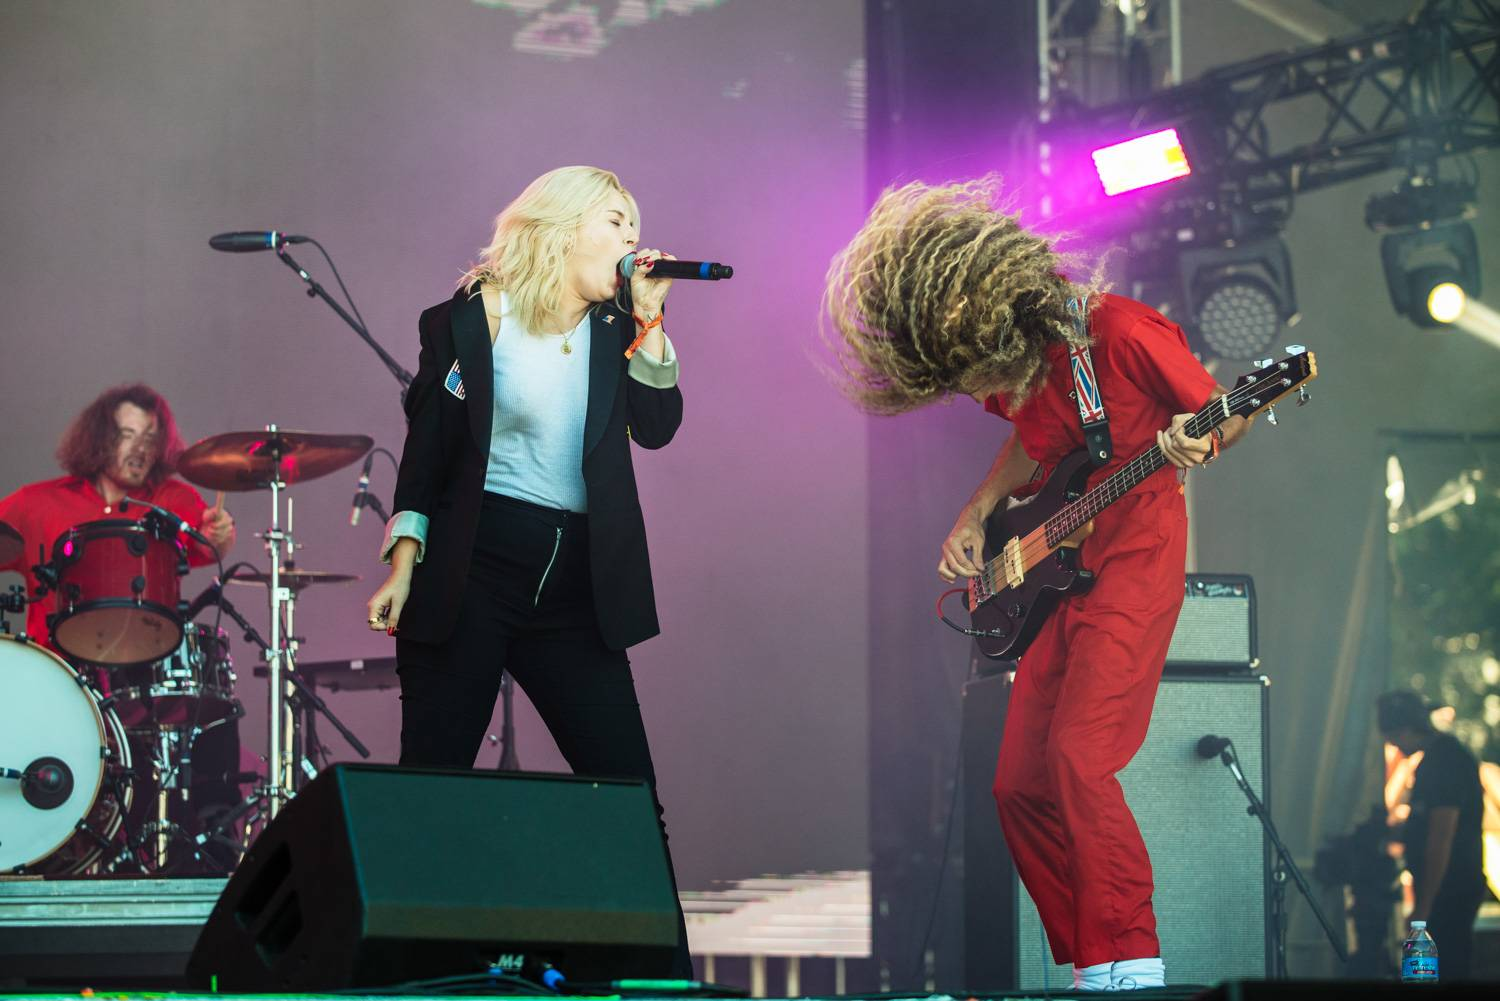 The Pink Slips at the Bumbershoot Music Festival 2018 - Day 3. Sept 2 2018. Pavel Boiko photo.